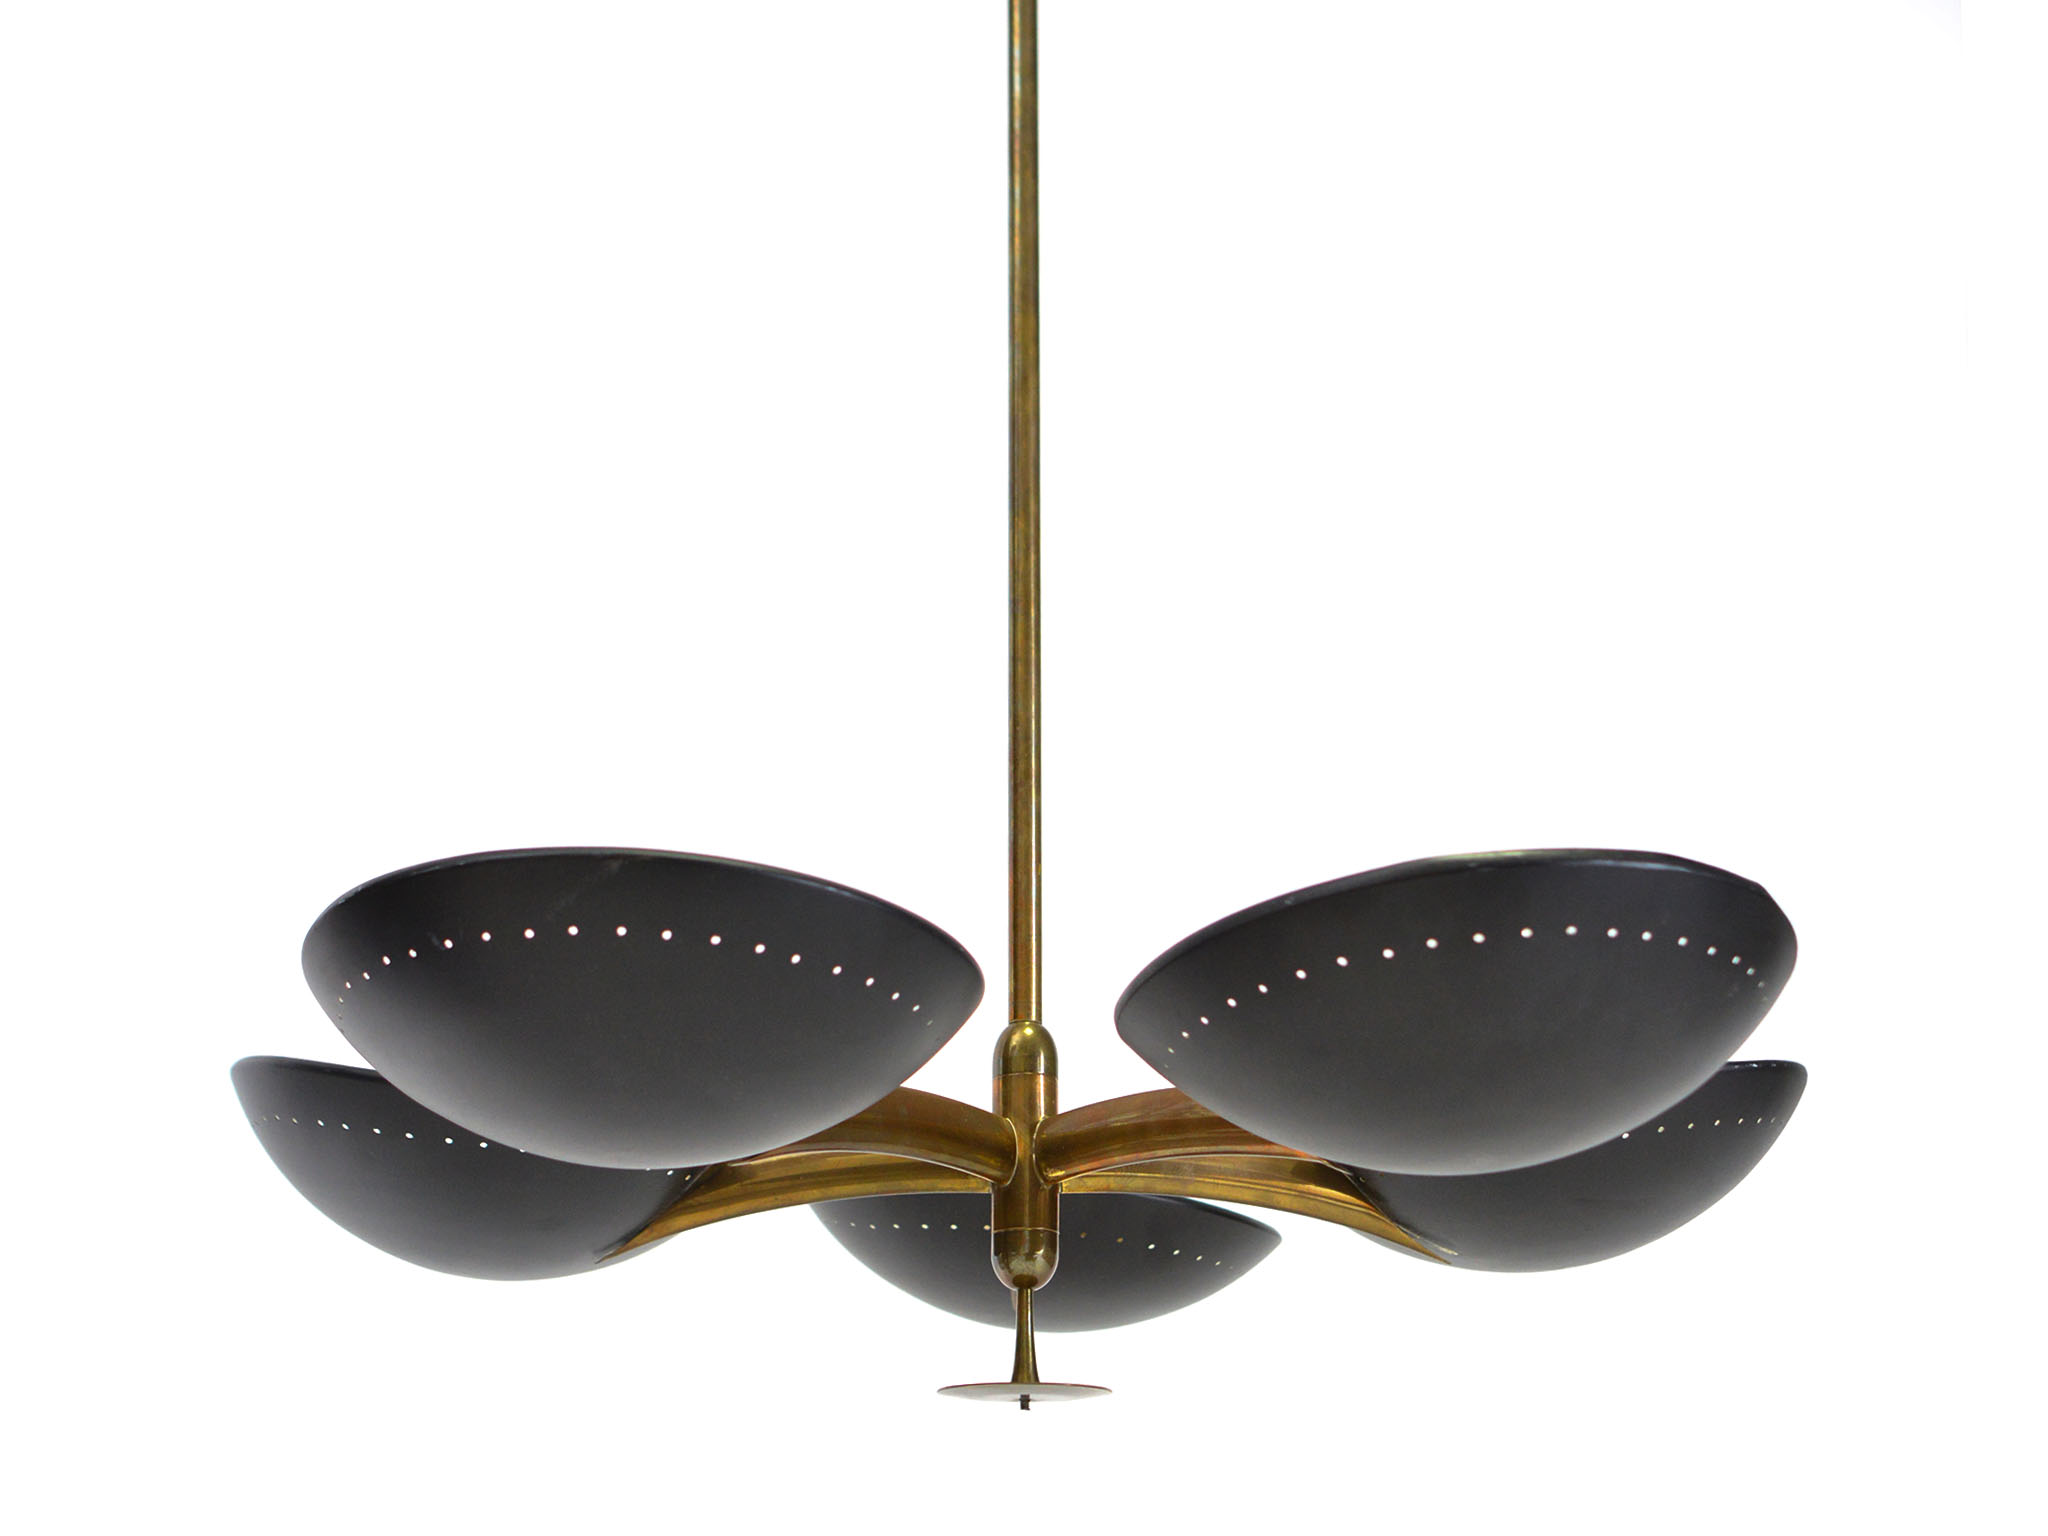 ANGELO LELLI CEILING LIGHT FOR STILNOVO